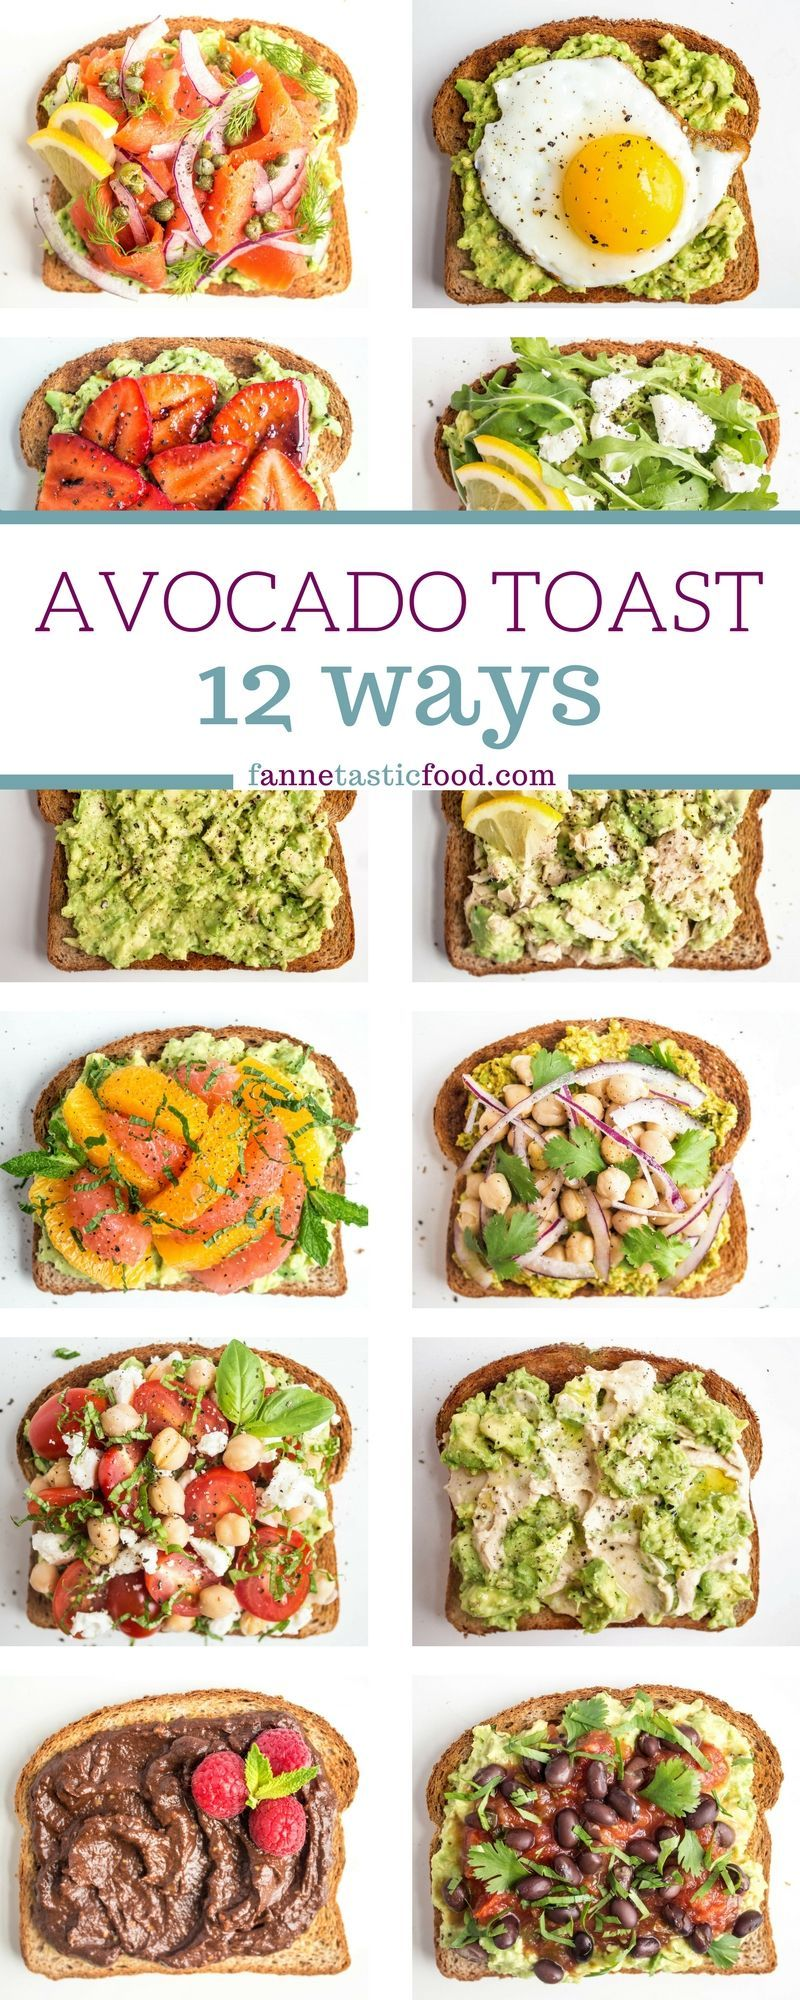 Photo of Avocado Toast Recipes | Easy and Fast Mix + Match Ideas